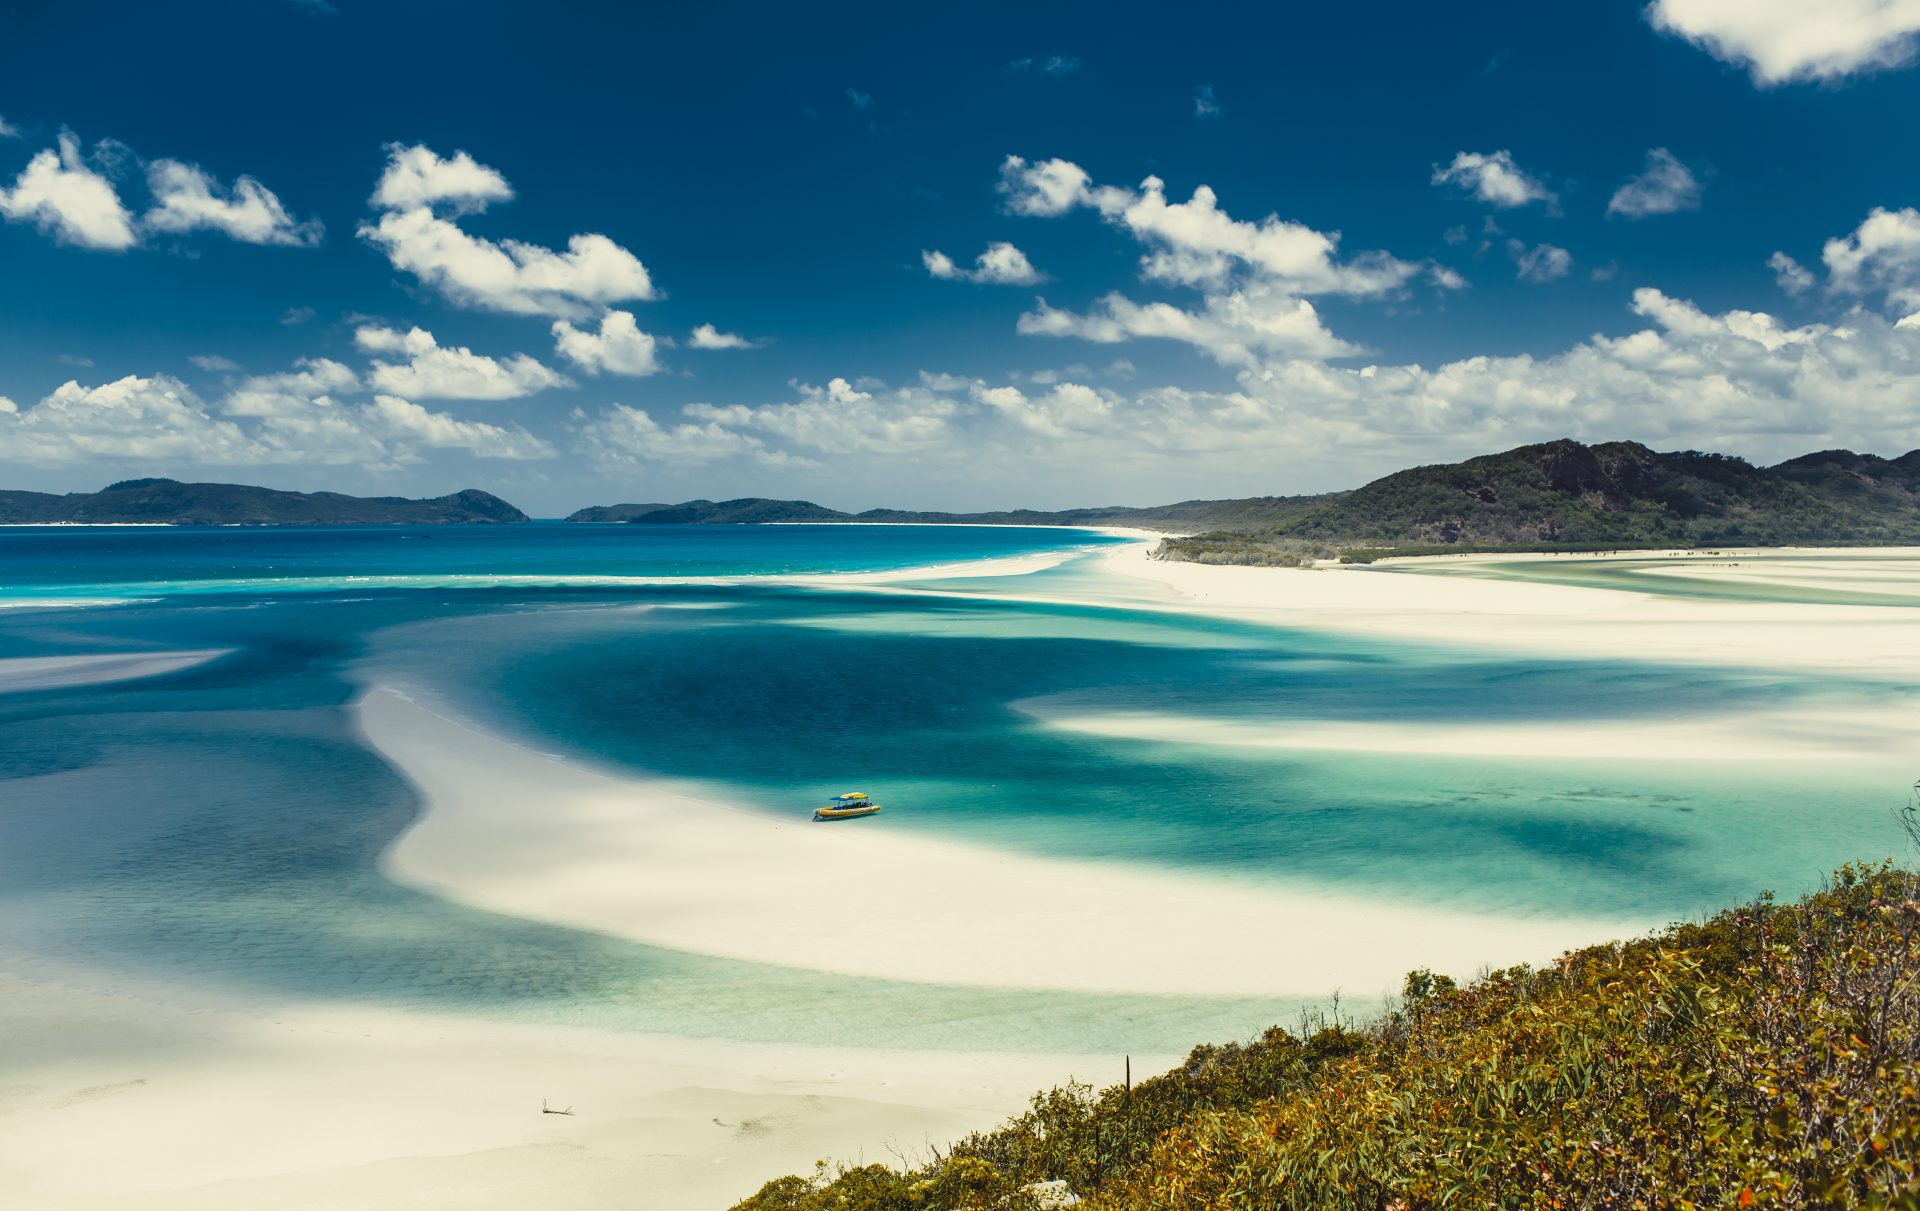 Whitsunday Islands, Whitehaven Beach